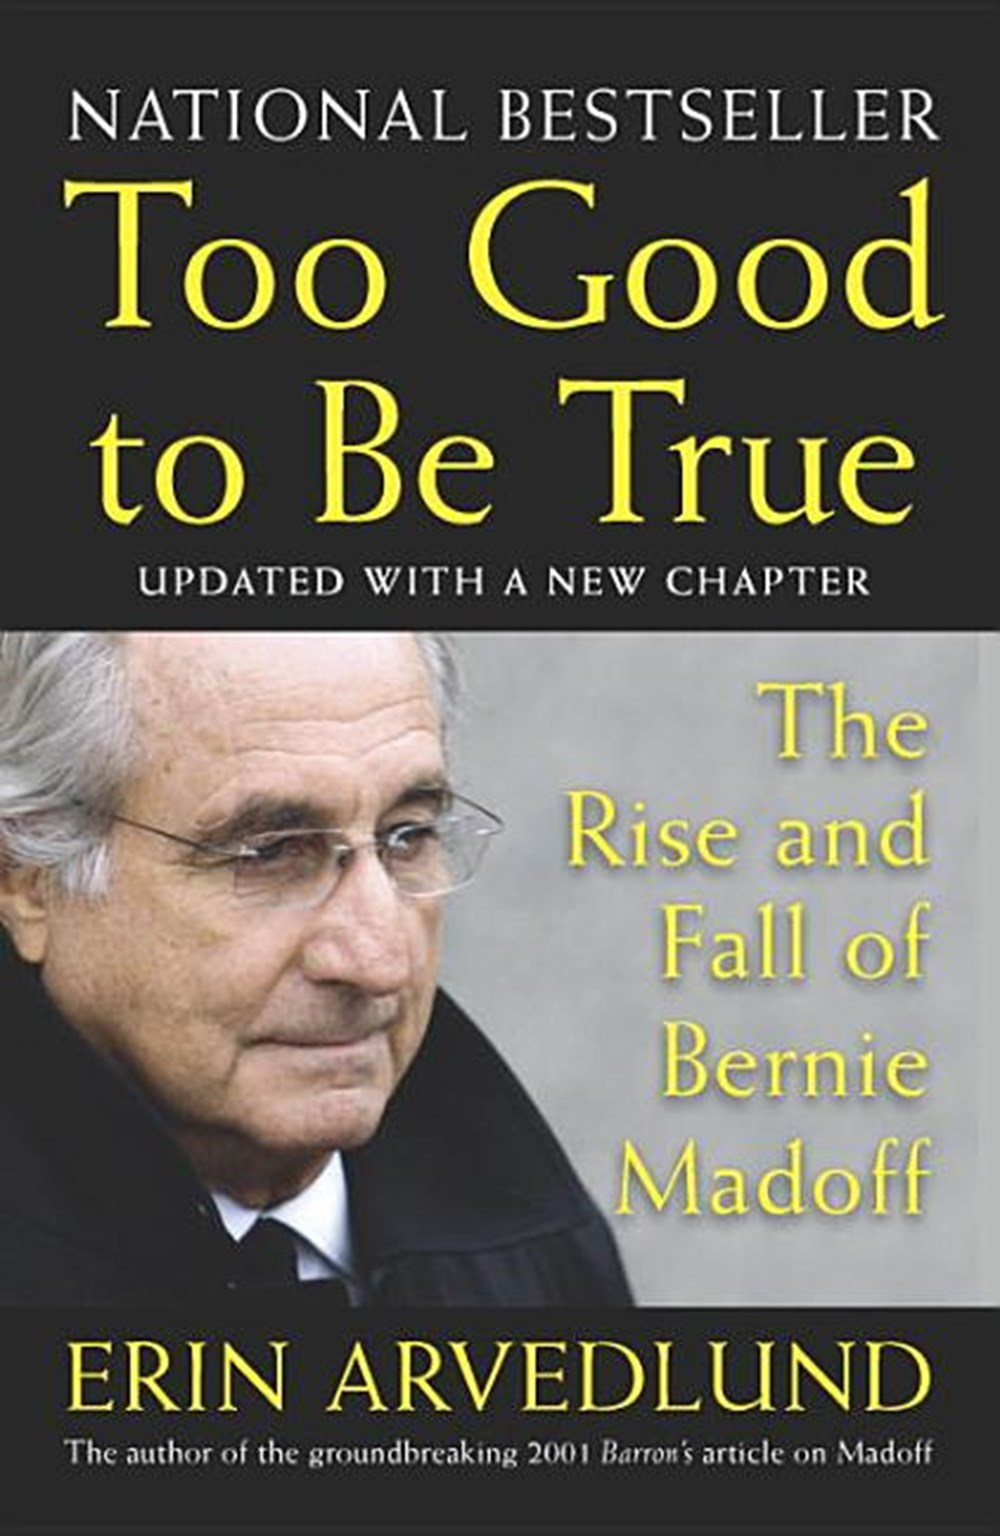 Too Good to Be True The Rise and Fall of Bernie Madoff (Updated)